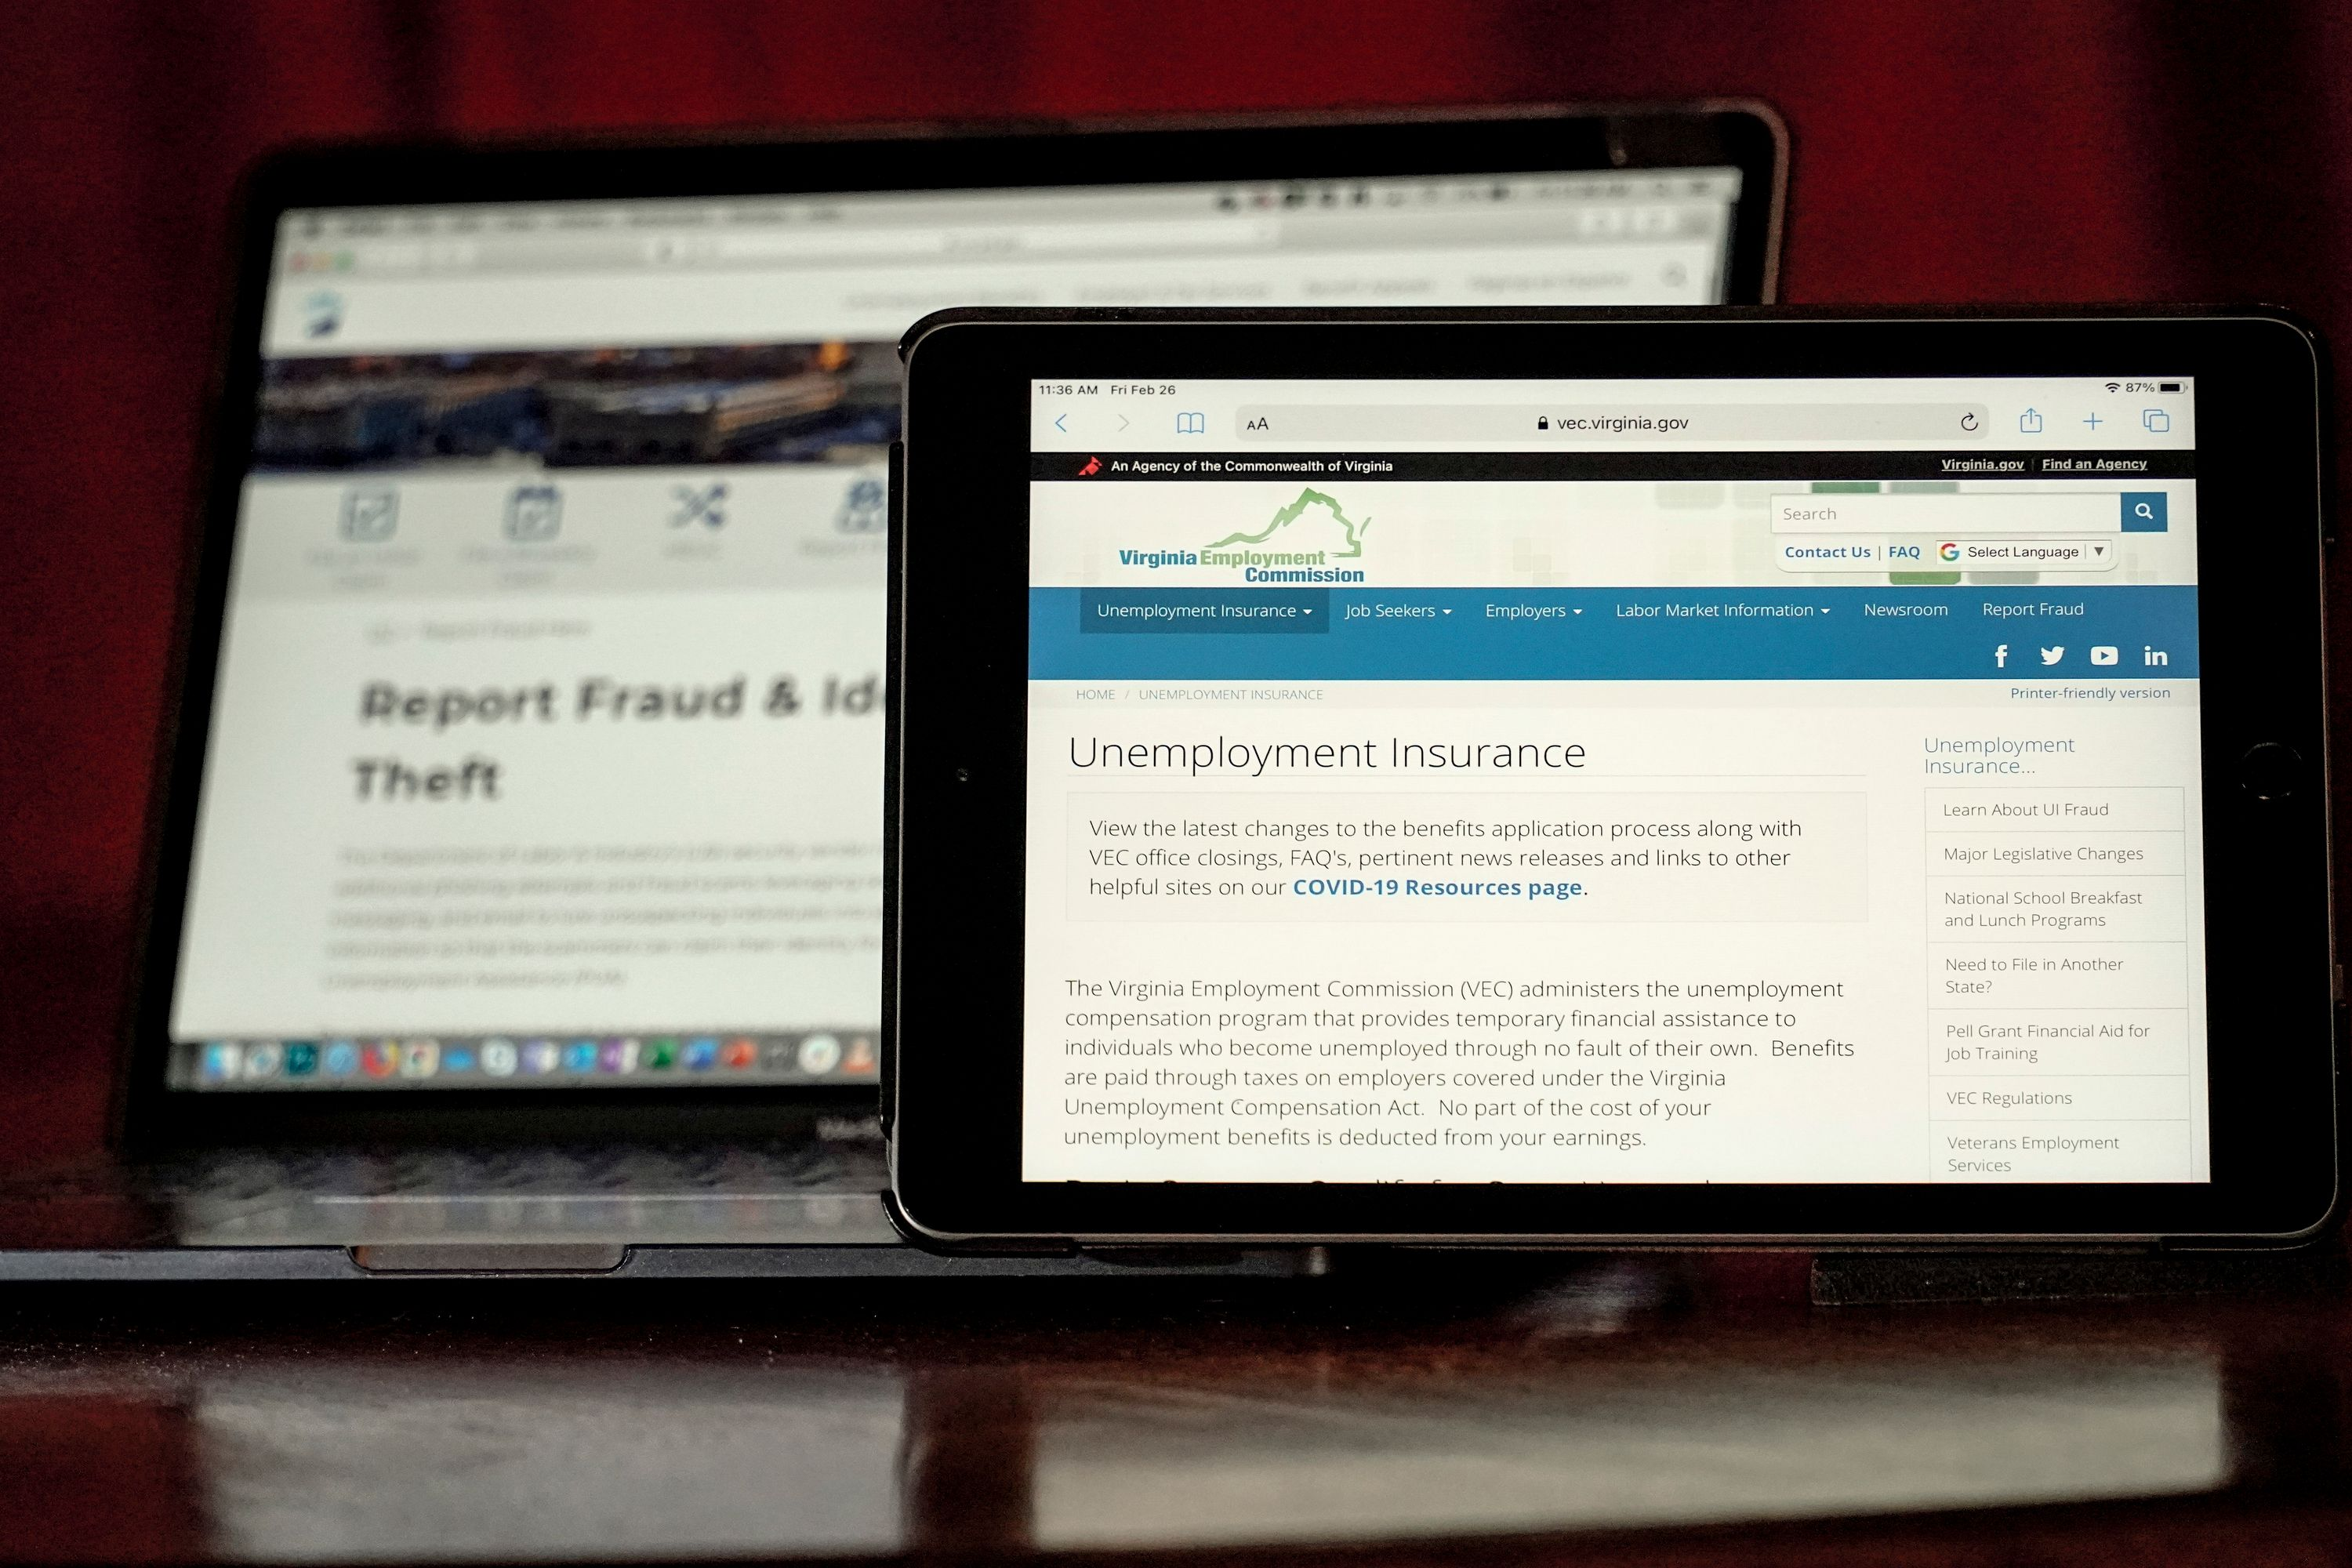 Web pages used to show information for collecting unemployment insurance in Virginia, right, and reporting fraud and identity